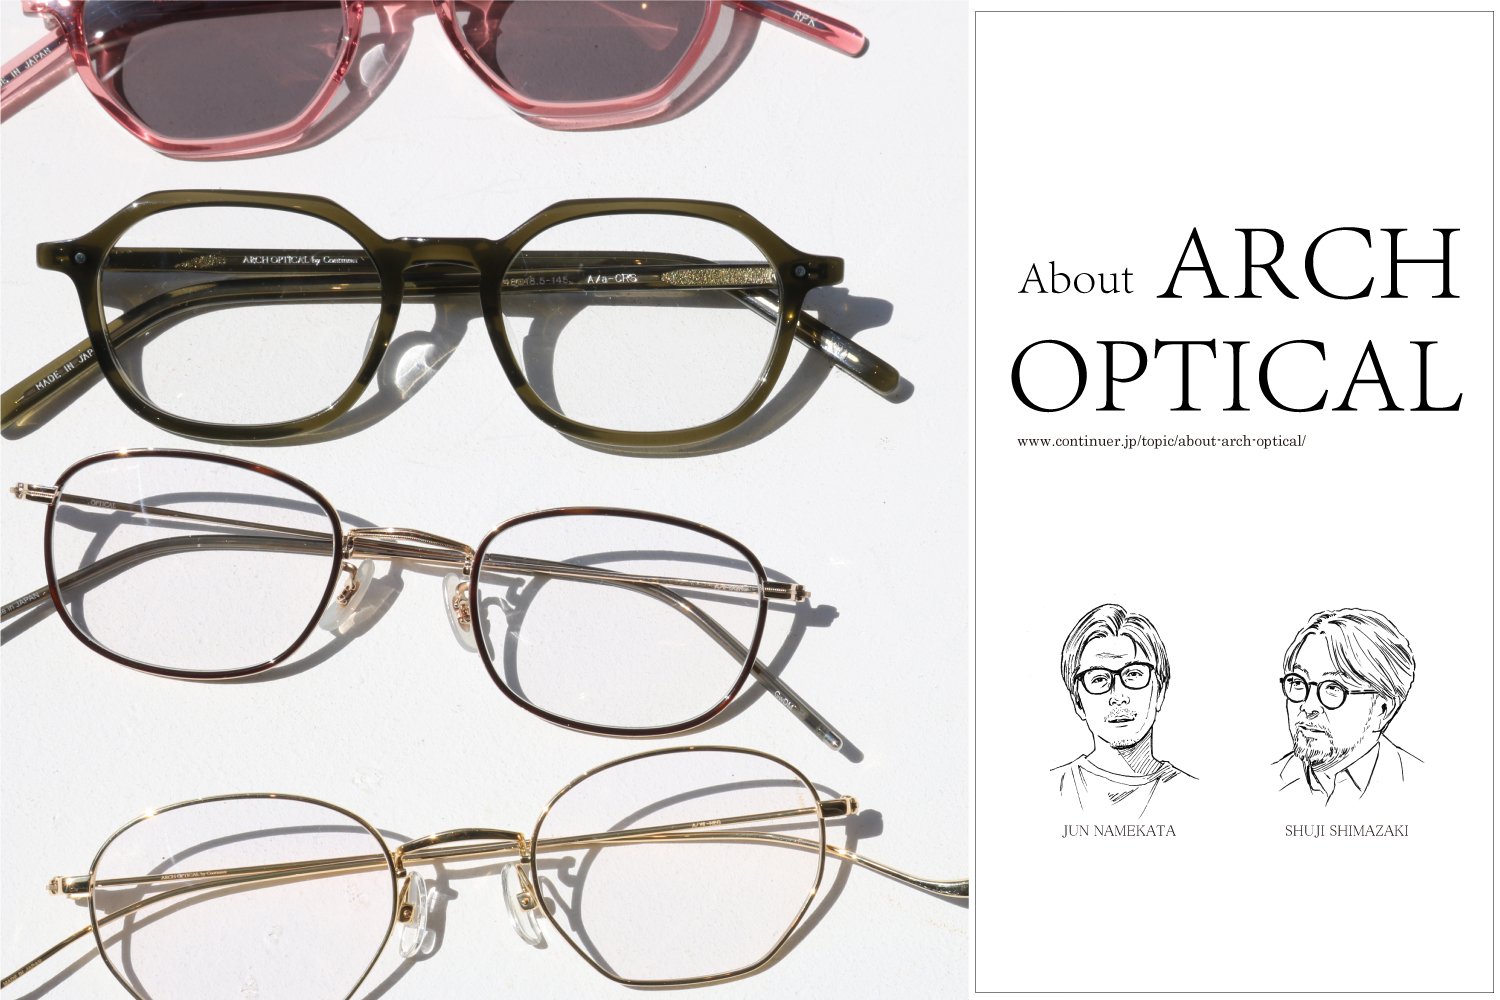 Think About ARCH OPTICAL